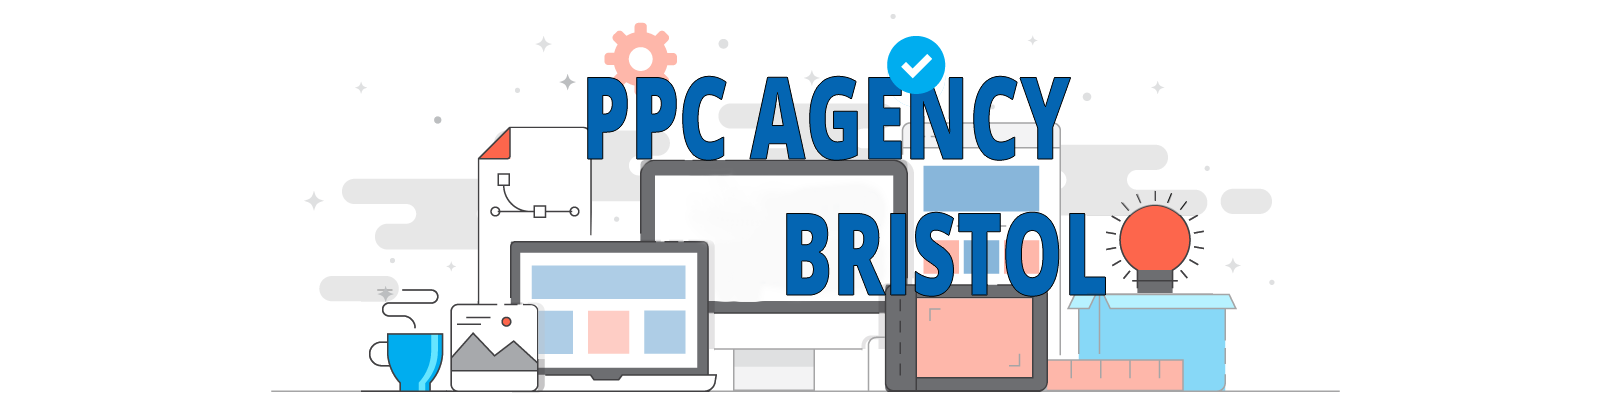 seek social ppc agency bristol header with transparent background